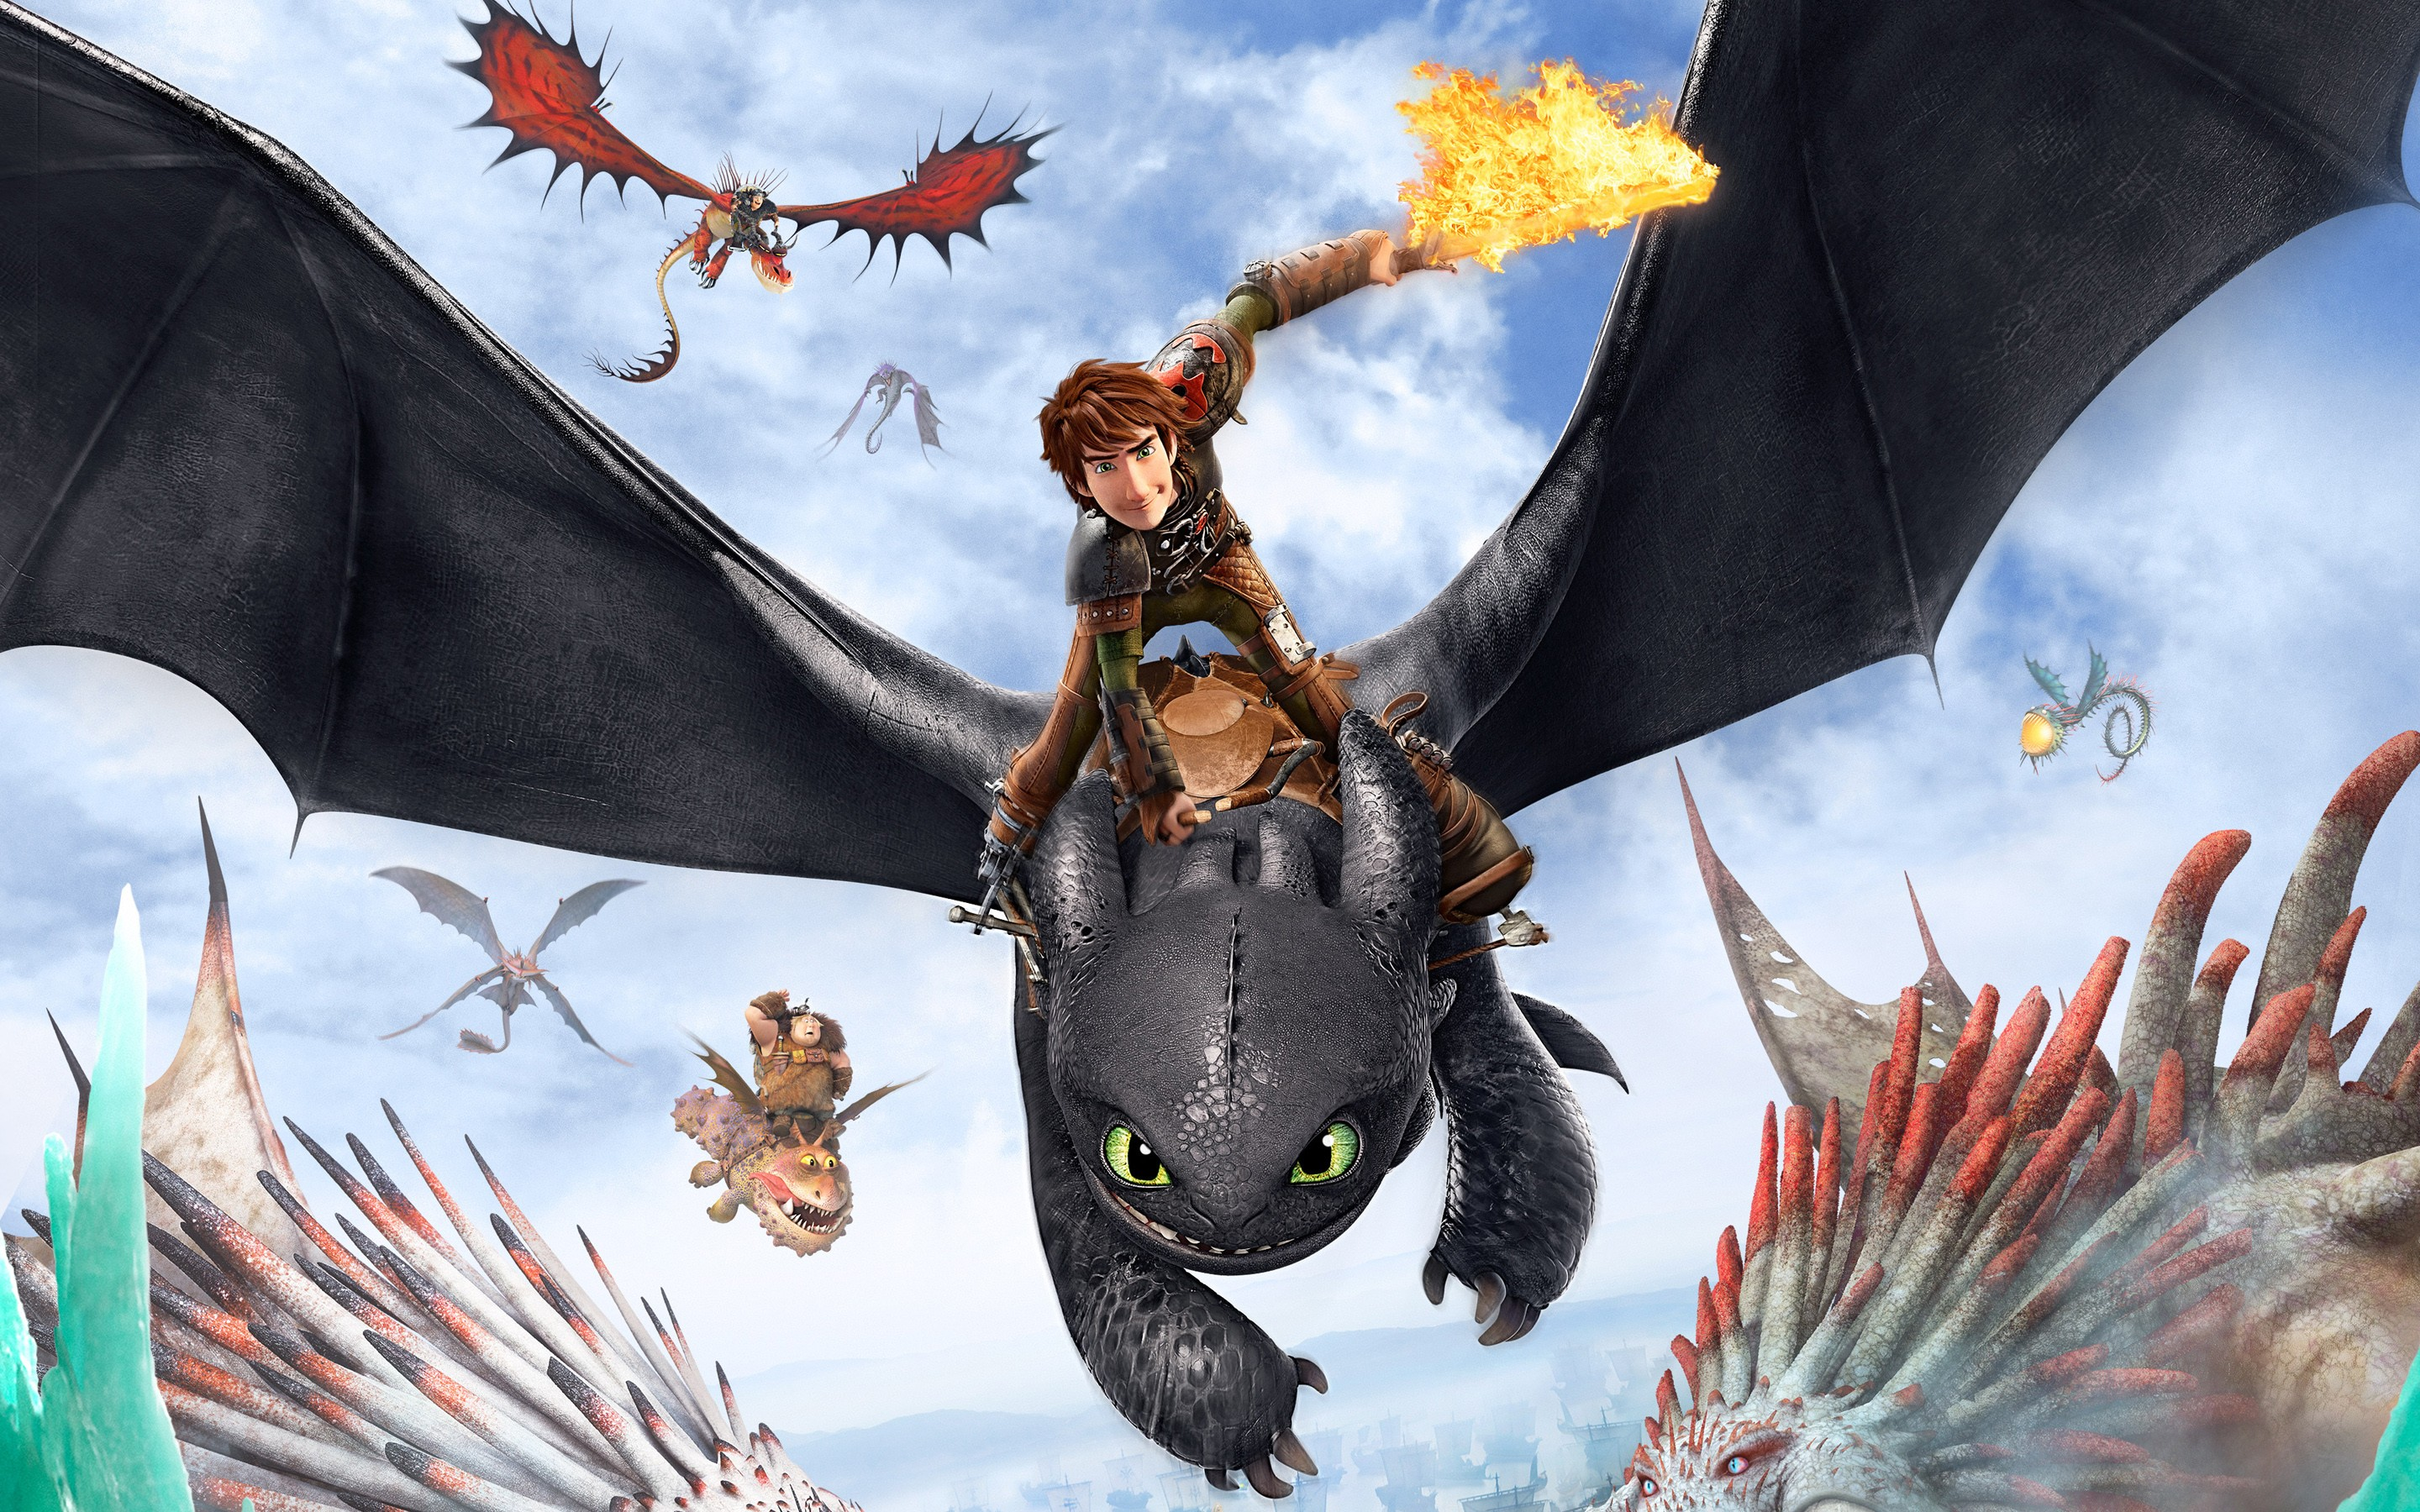 How to train your dragon 2 hd movies 4k wallpapers - How to train your dragon hd download ...